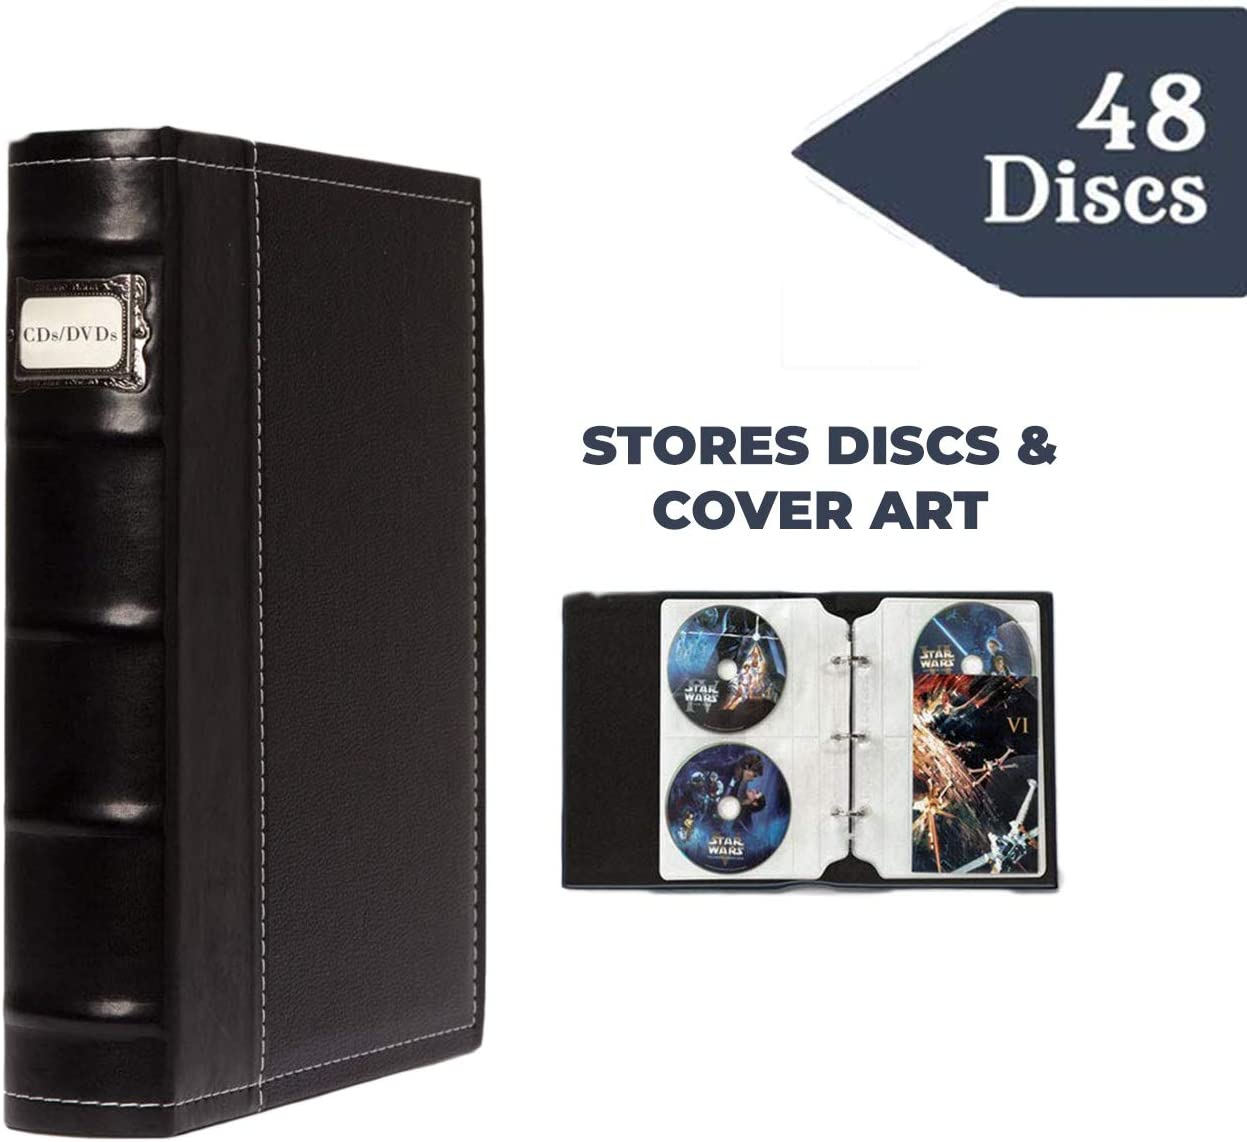 Stores up to 48 DVDs Acid Free Sheets Black CDs Bellagio-Italia Old World Book Box Blu-Rays or Valuables- Stores Cover Art